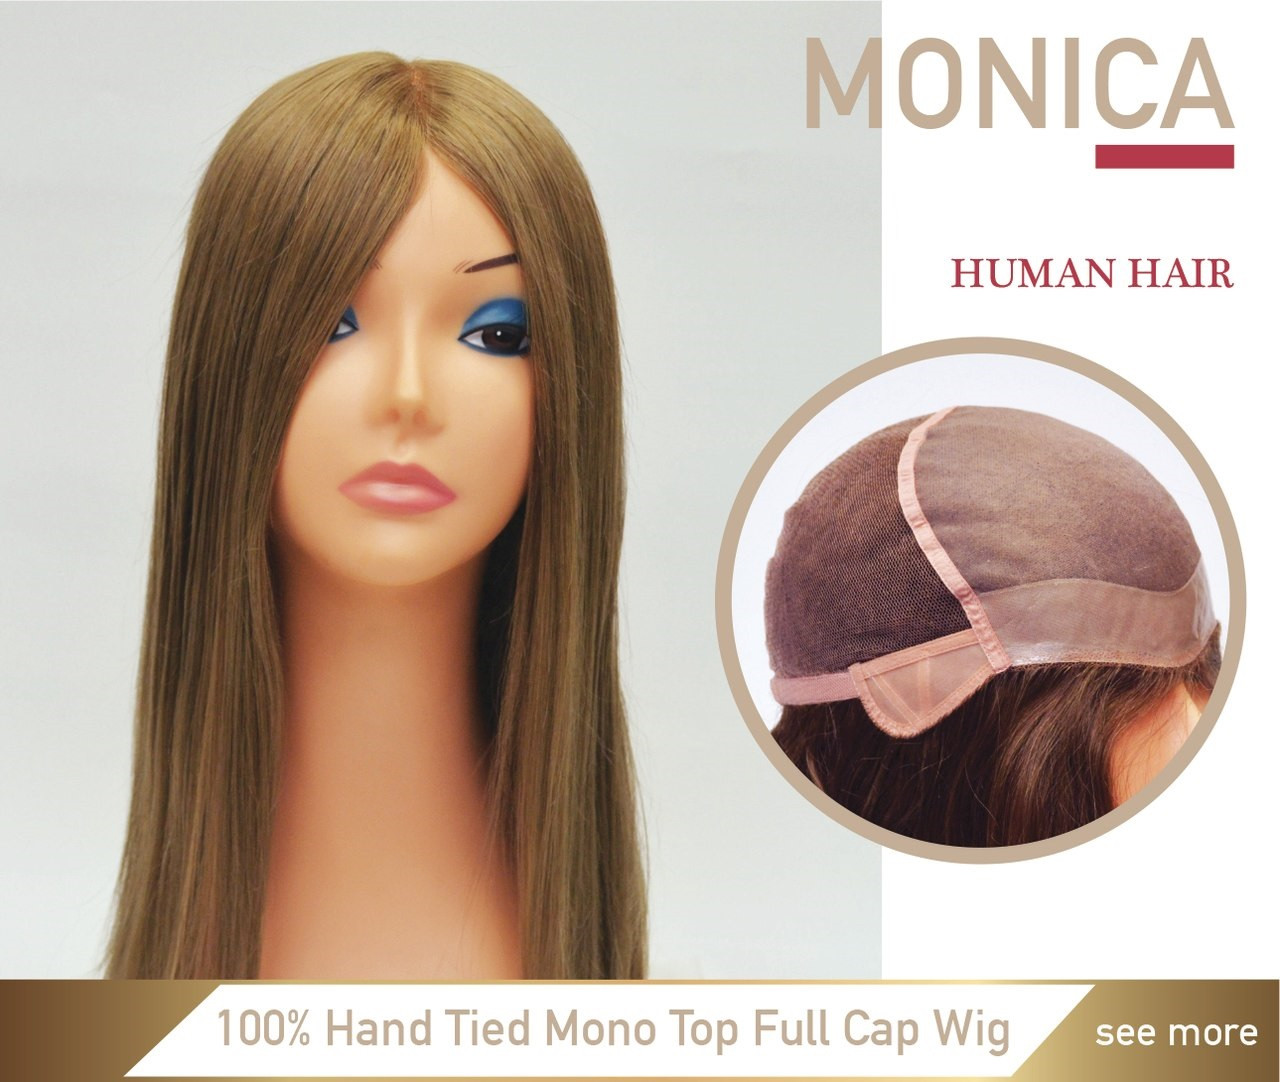 Mono silk top women s full cap wig for hair loss 29cad2a7fb